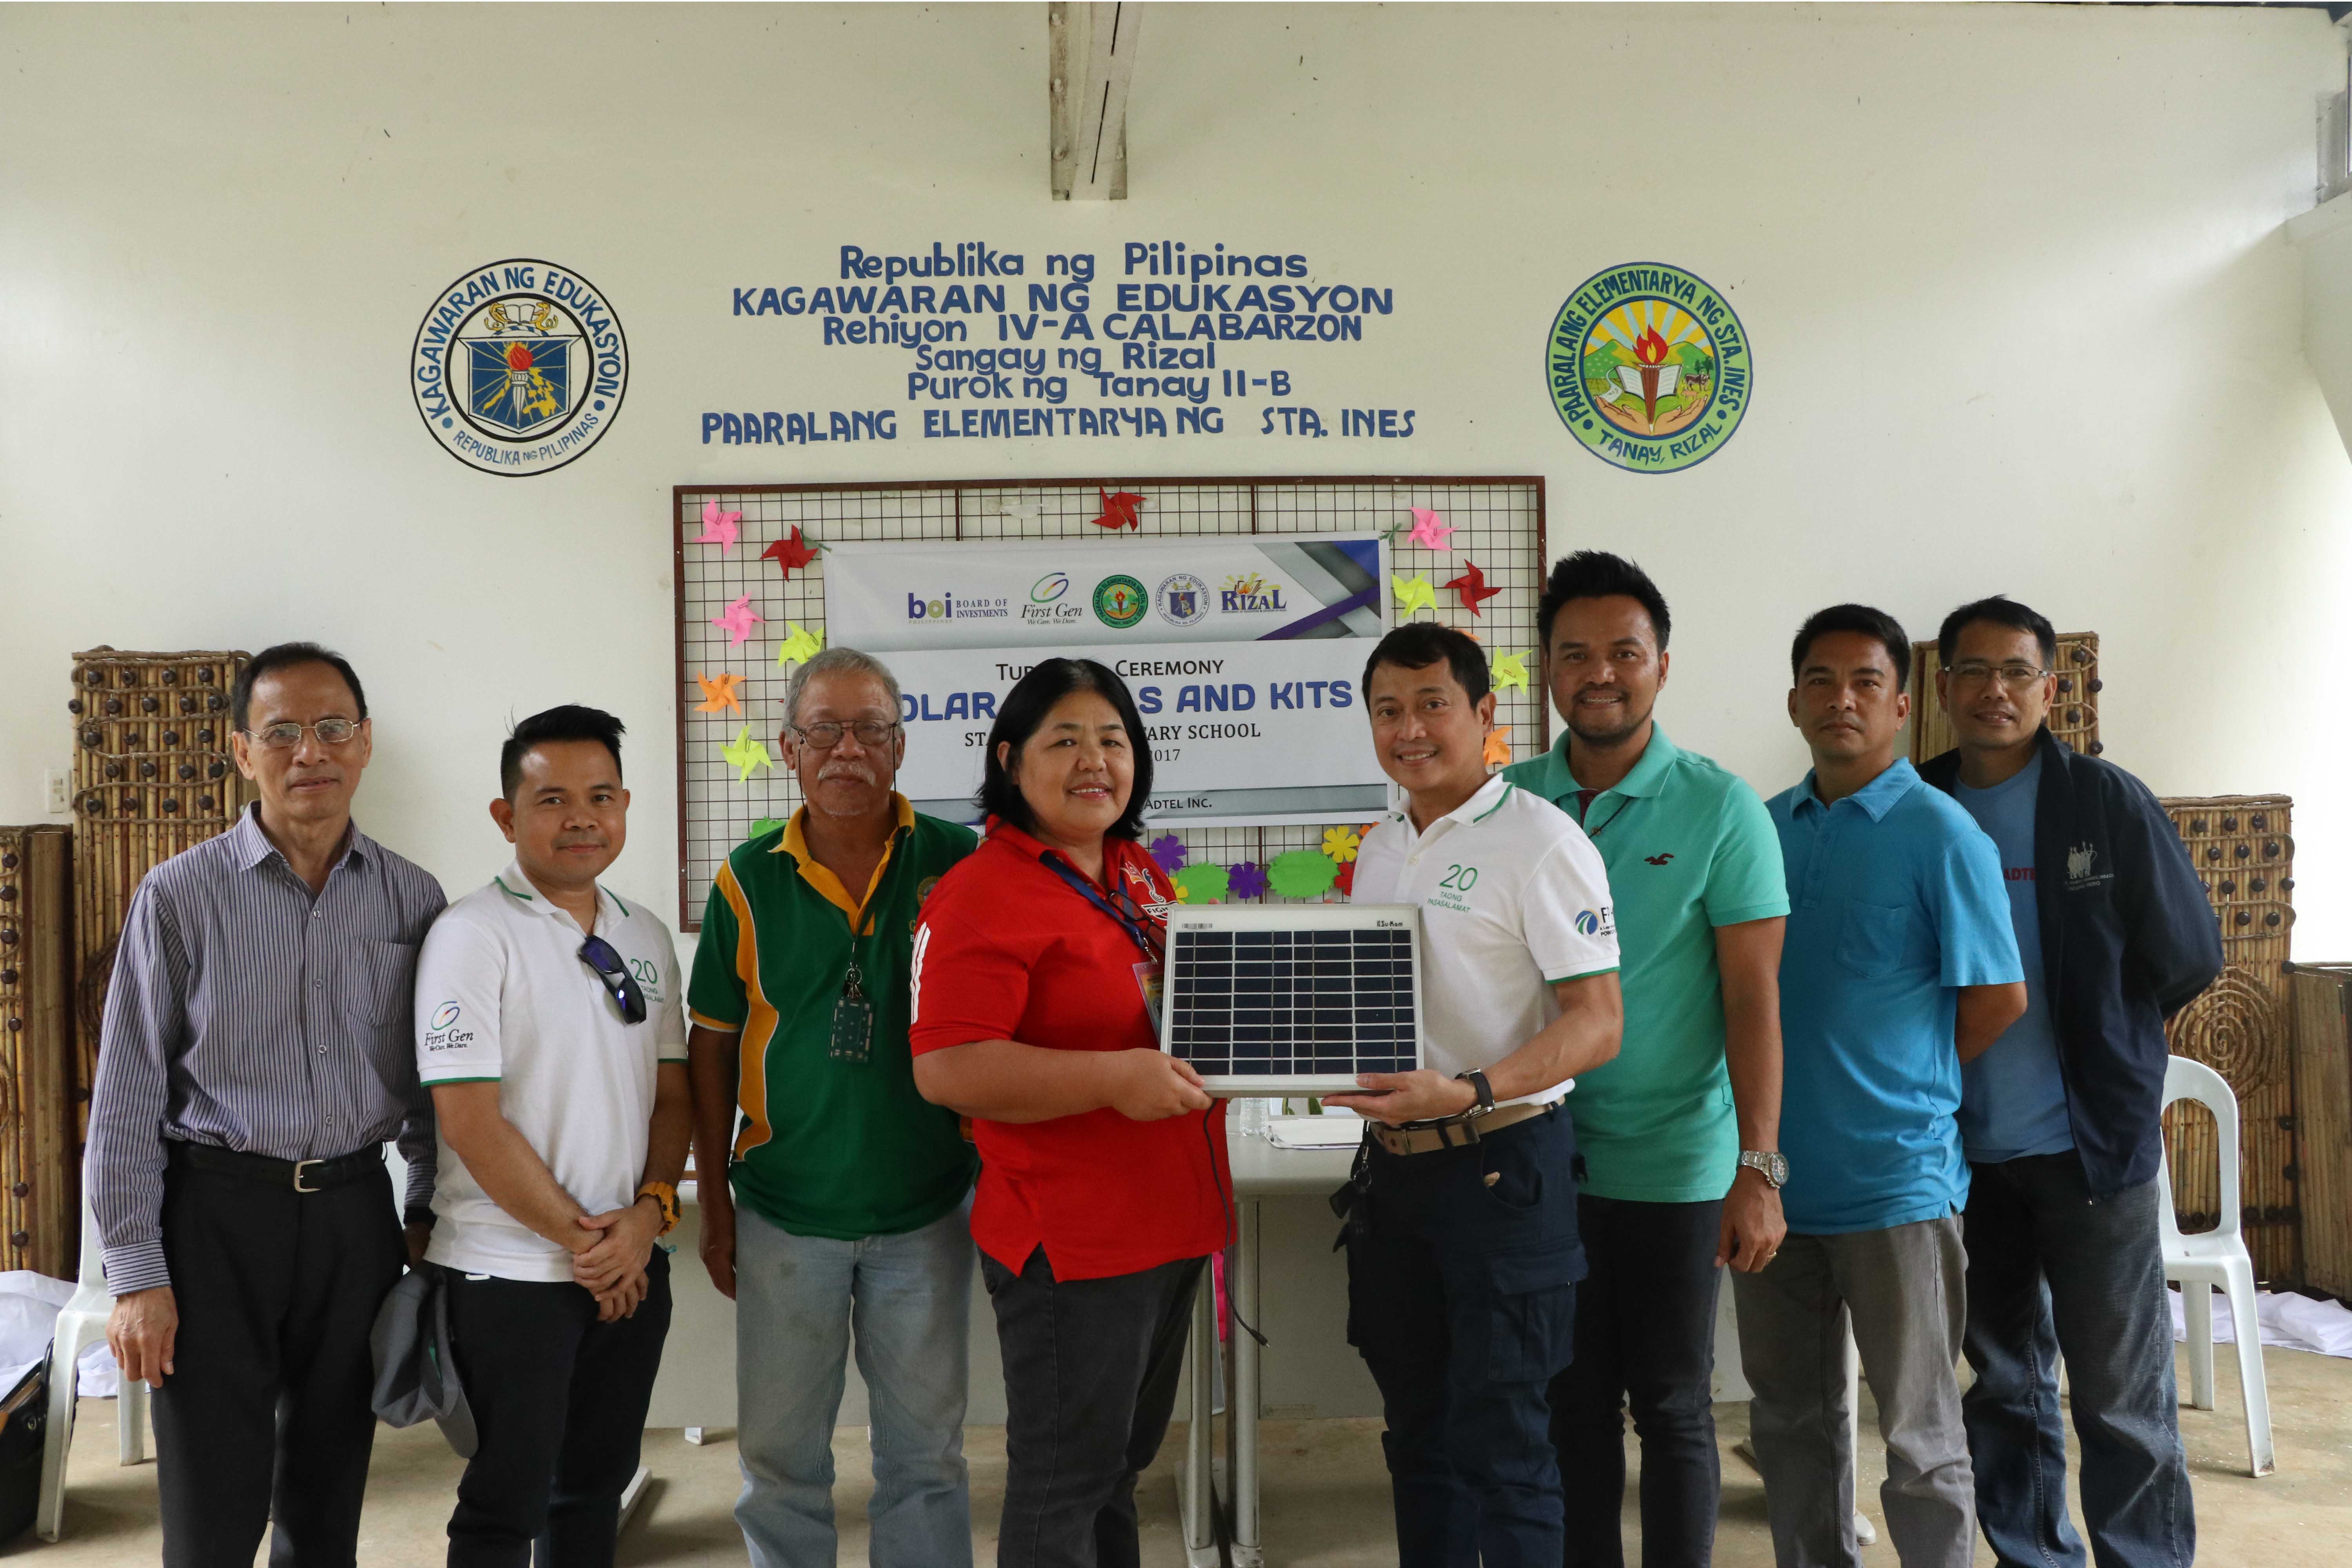 First Gen donates solar power system to off-grid school in Rizal